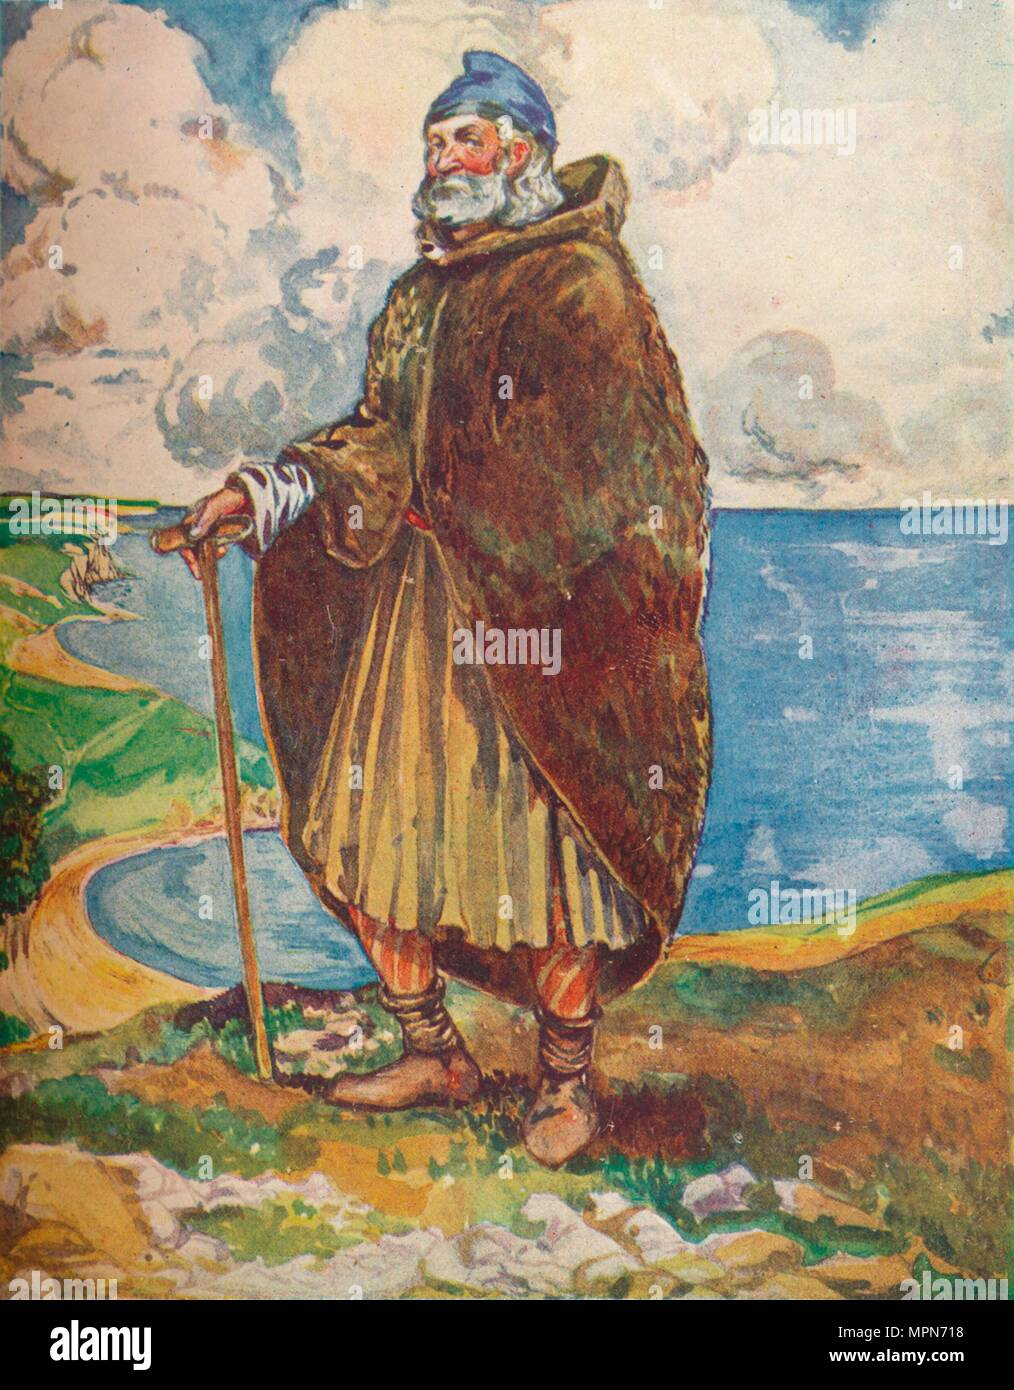 'A Man of the Time of Stephen', 1907. Artist: Dion Clayton Calthrop. - Stock Image